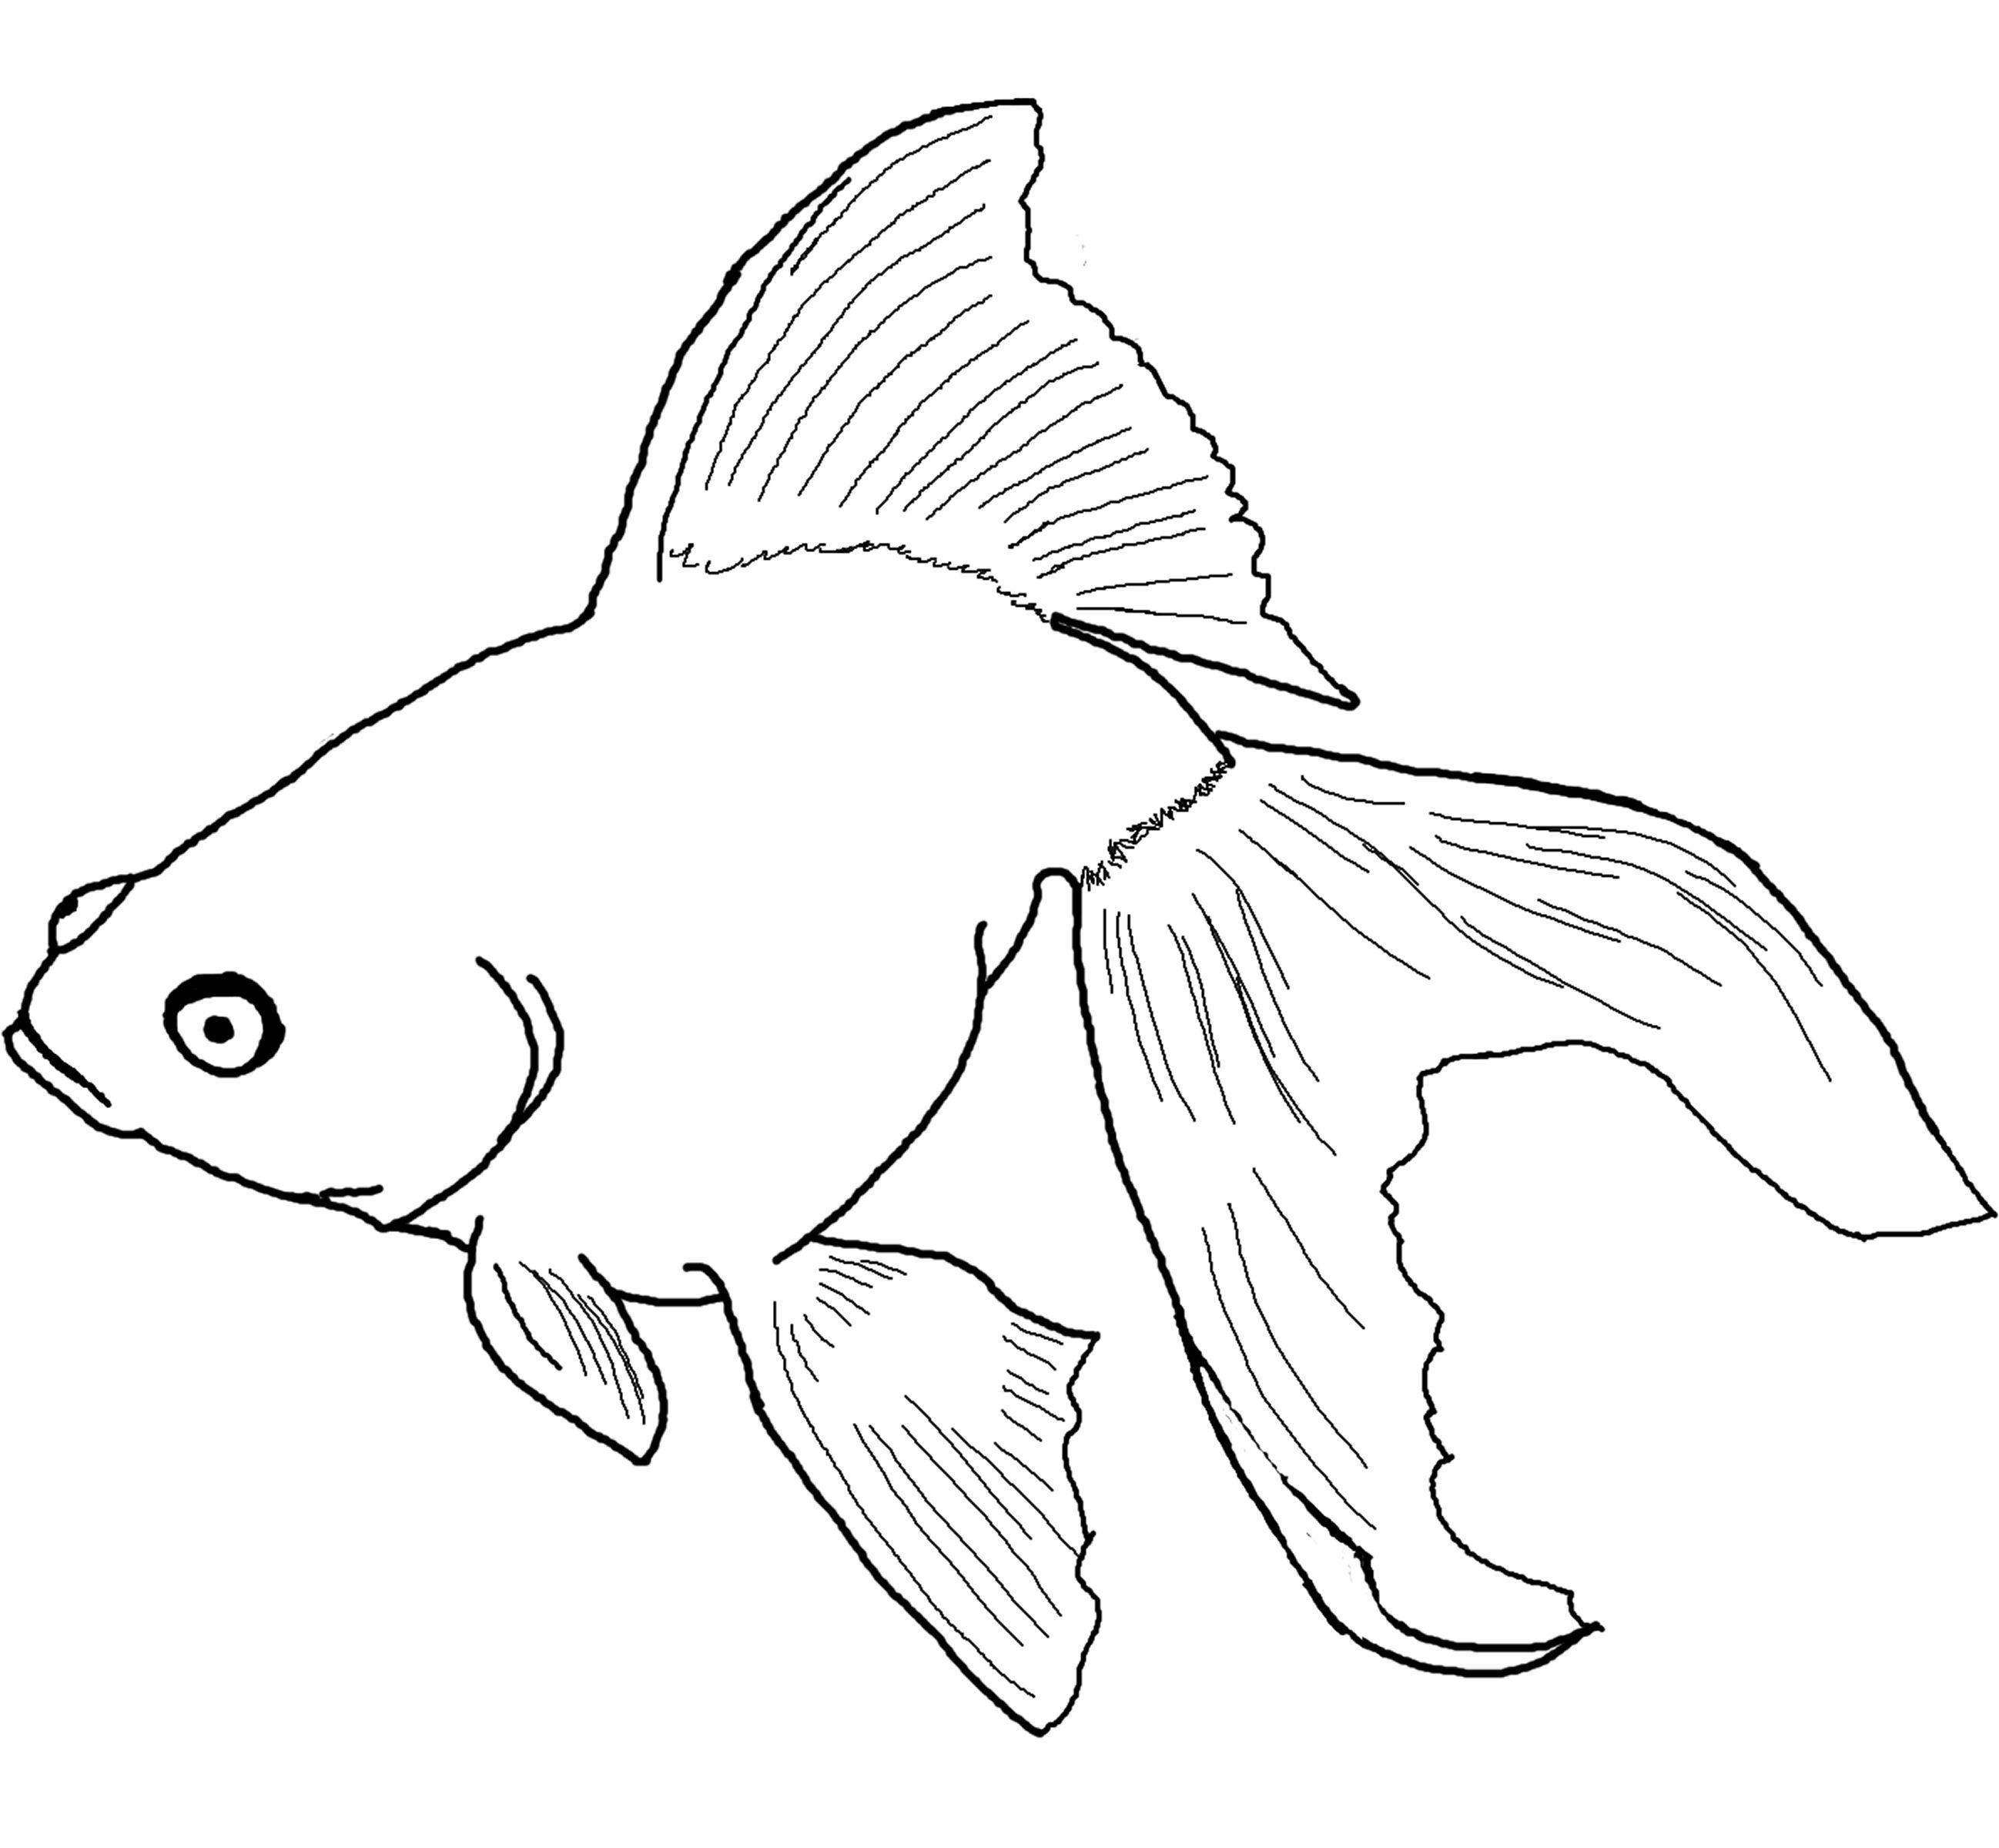 2596x2400 Free Printable Fish Coloring Pages For Kids